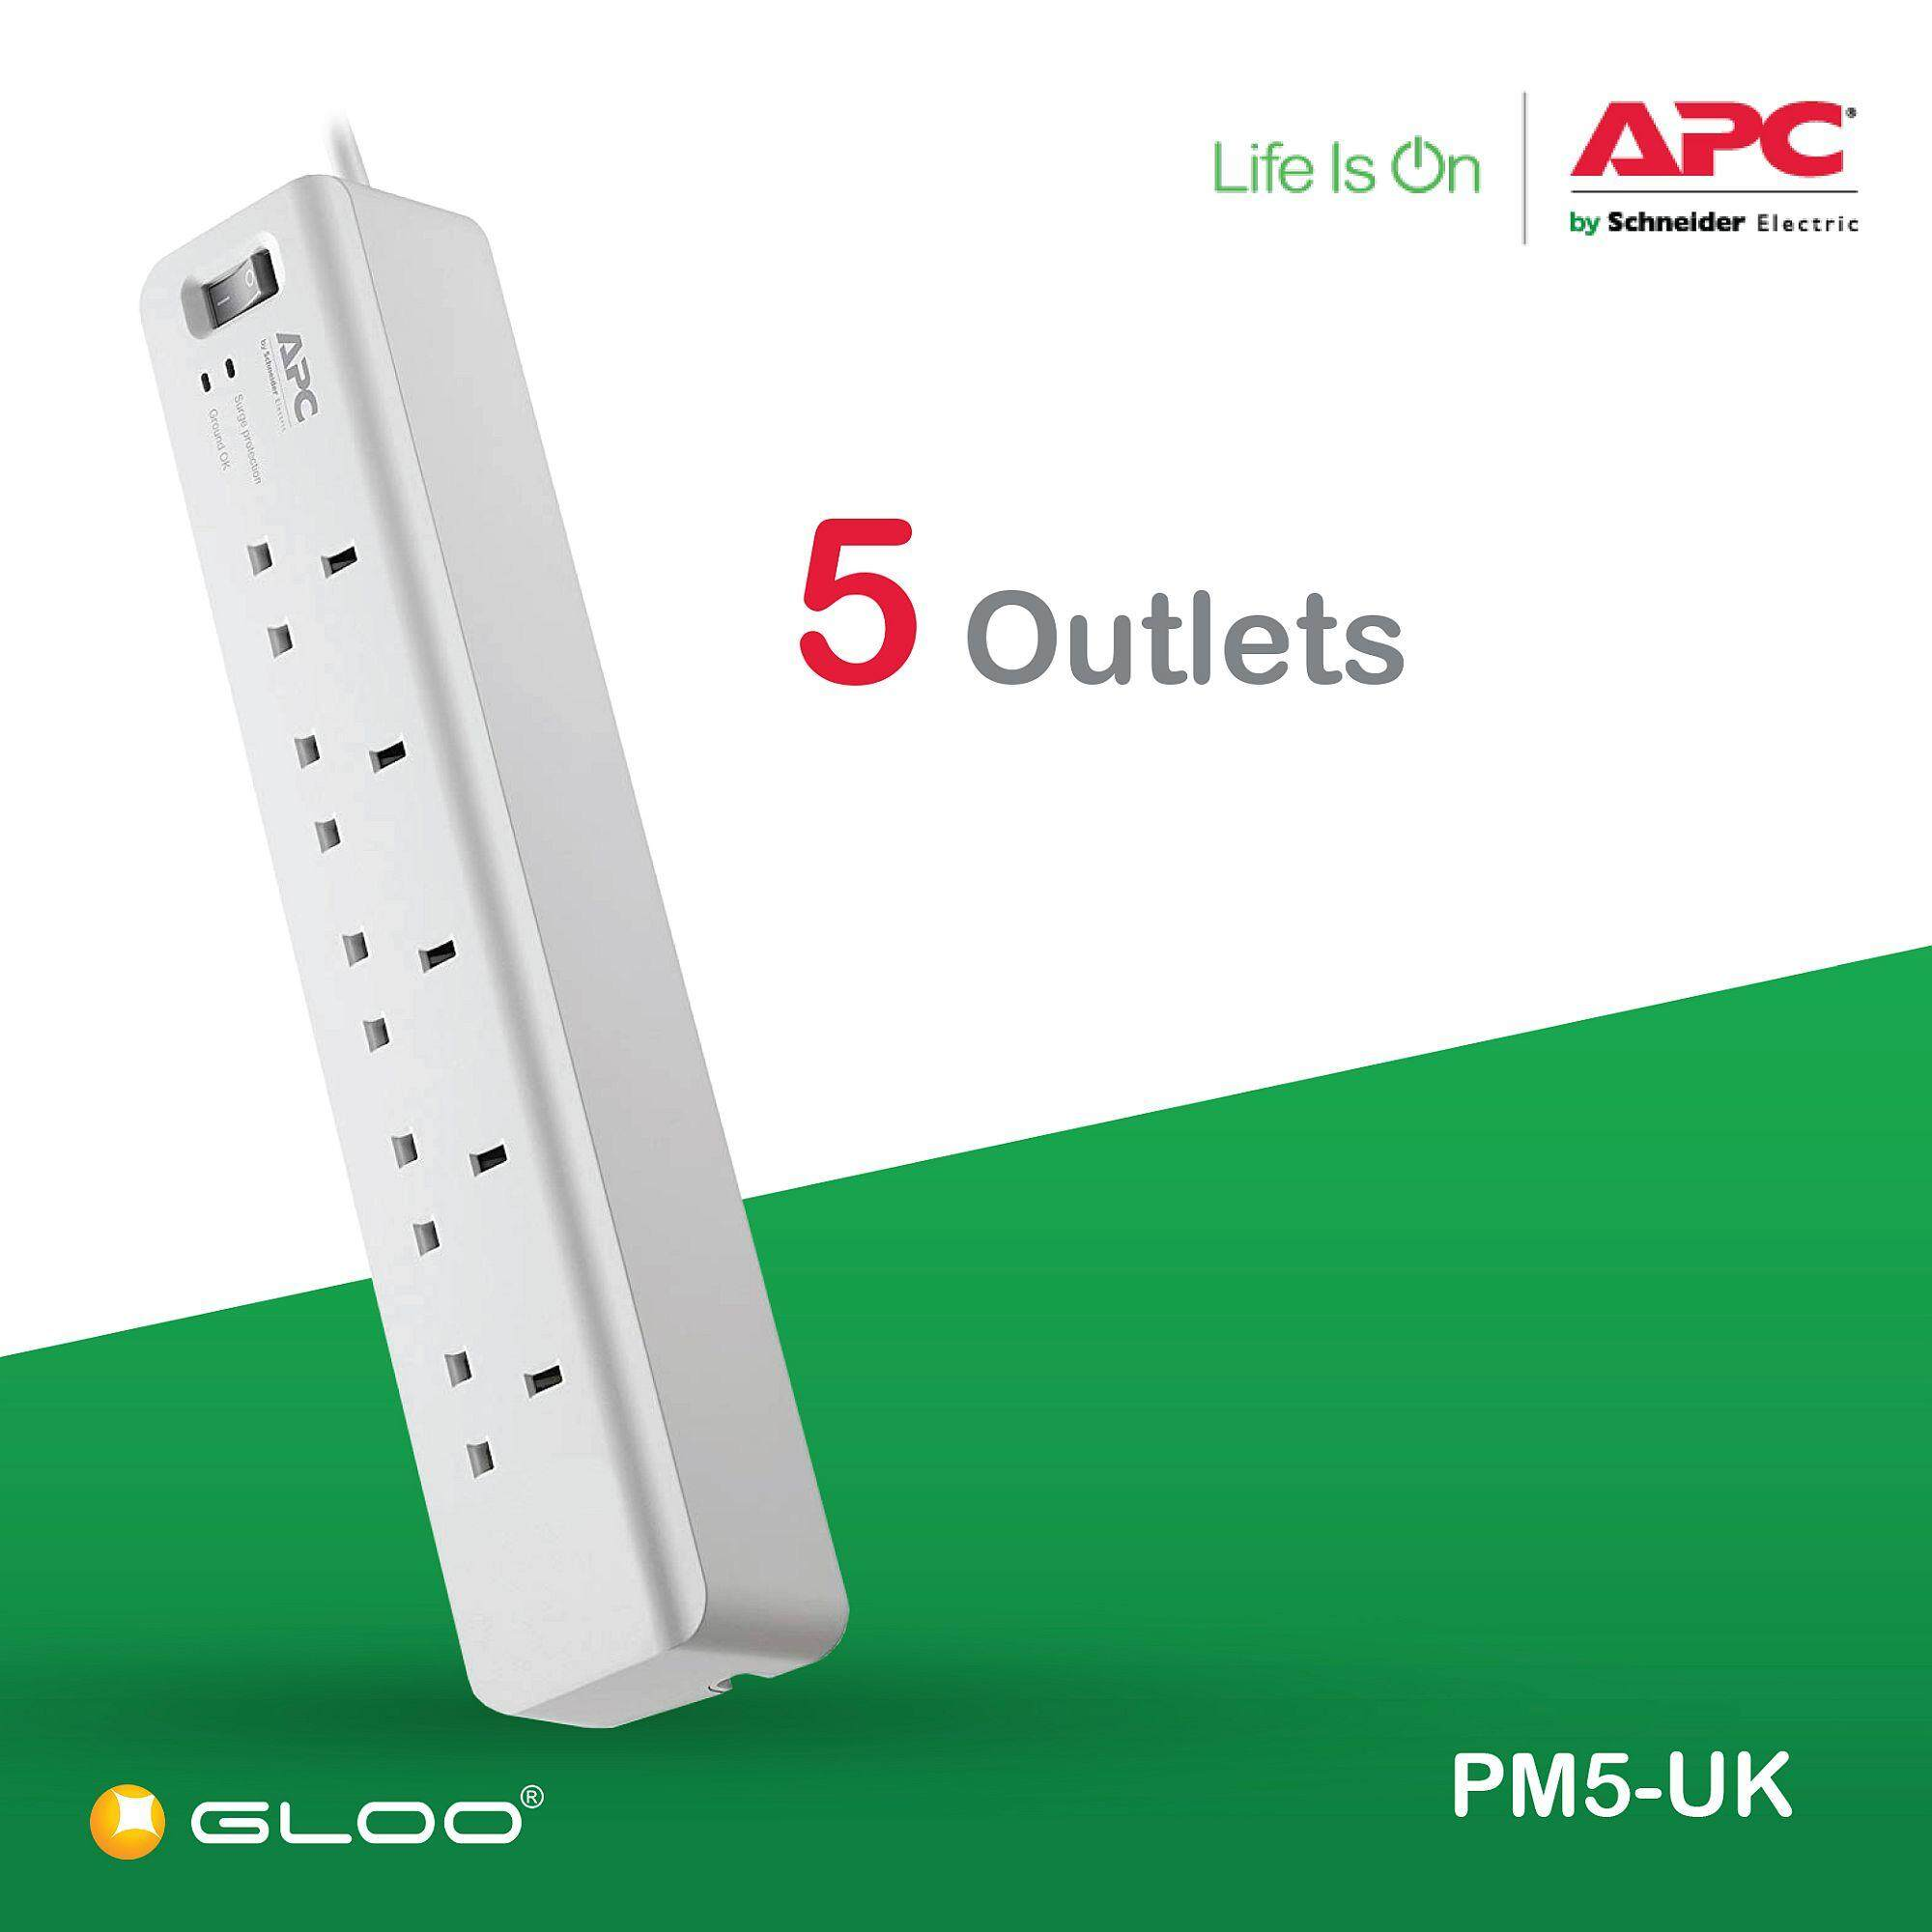 APC Essential SurgeArrest 5 outlets 230V UK PM5-UK - White [Free RM20 BHP Petrol Voucher from 29 Aug - 16 Sept 2019]